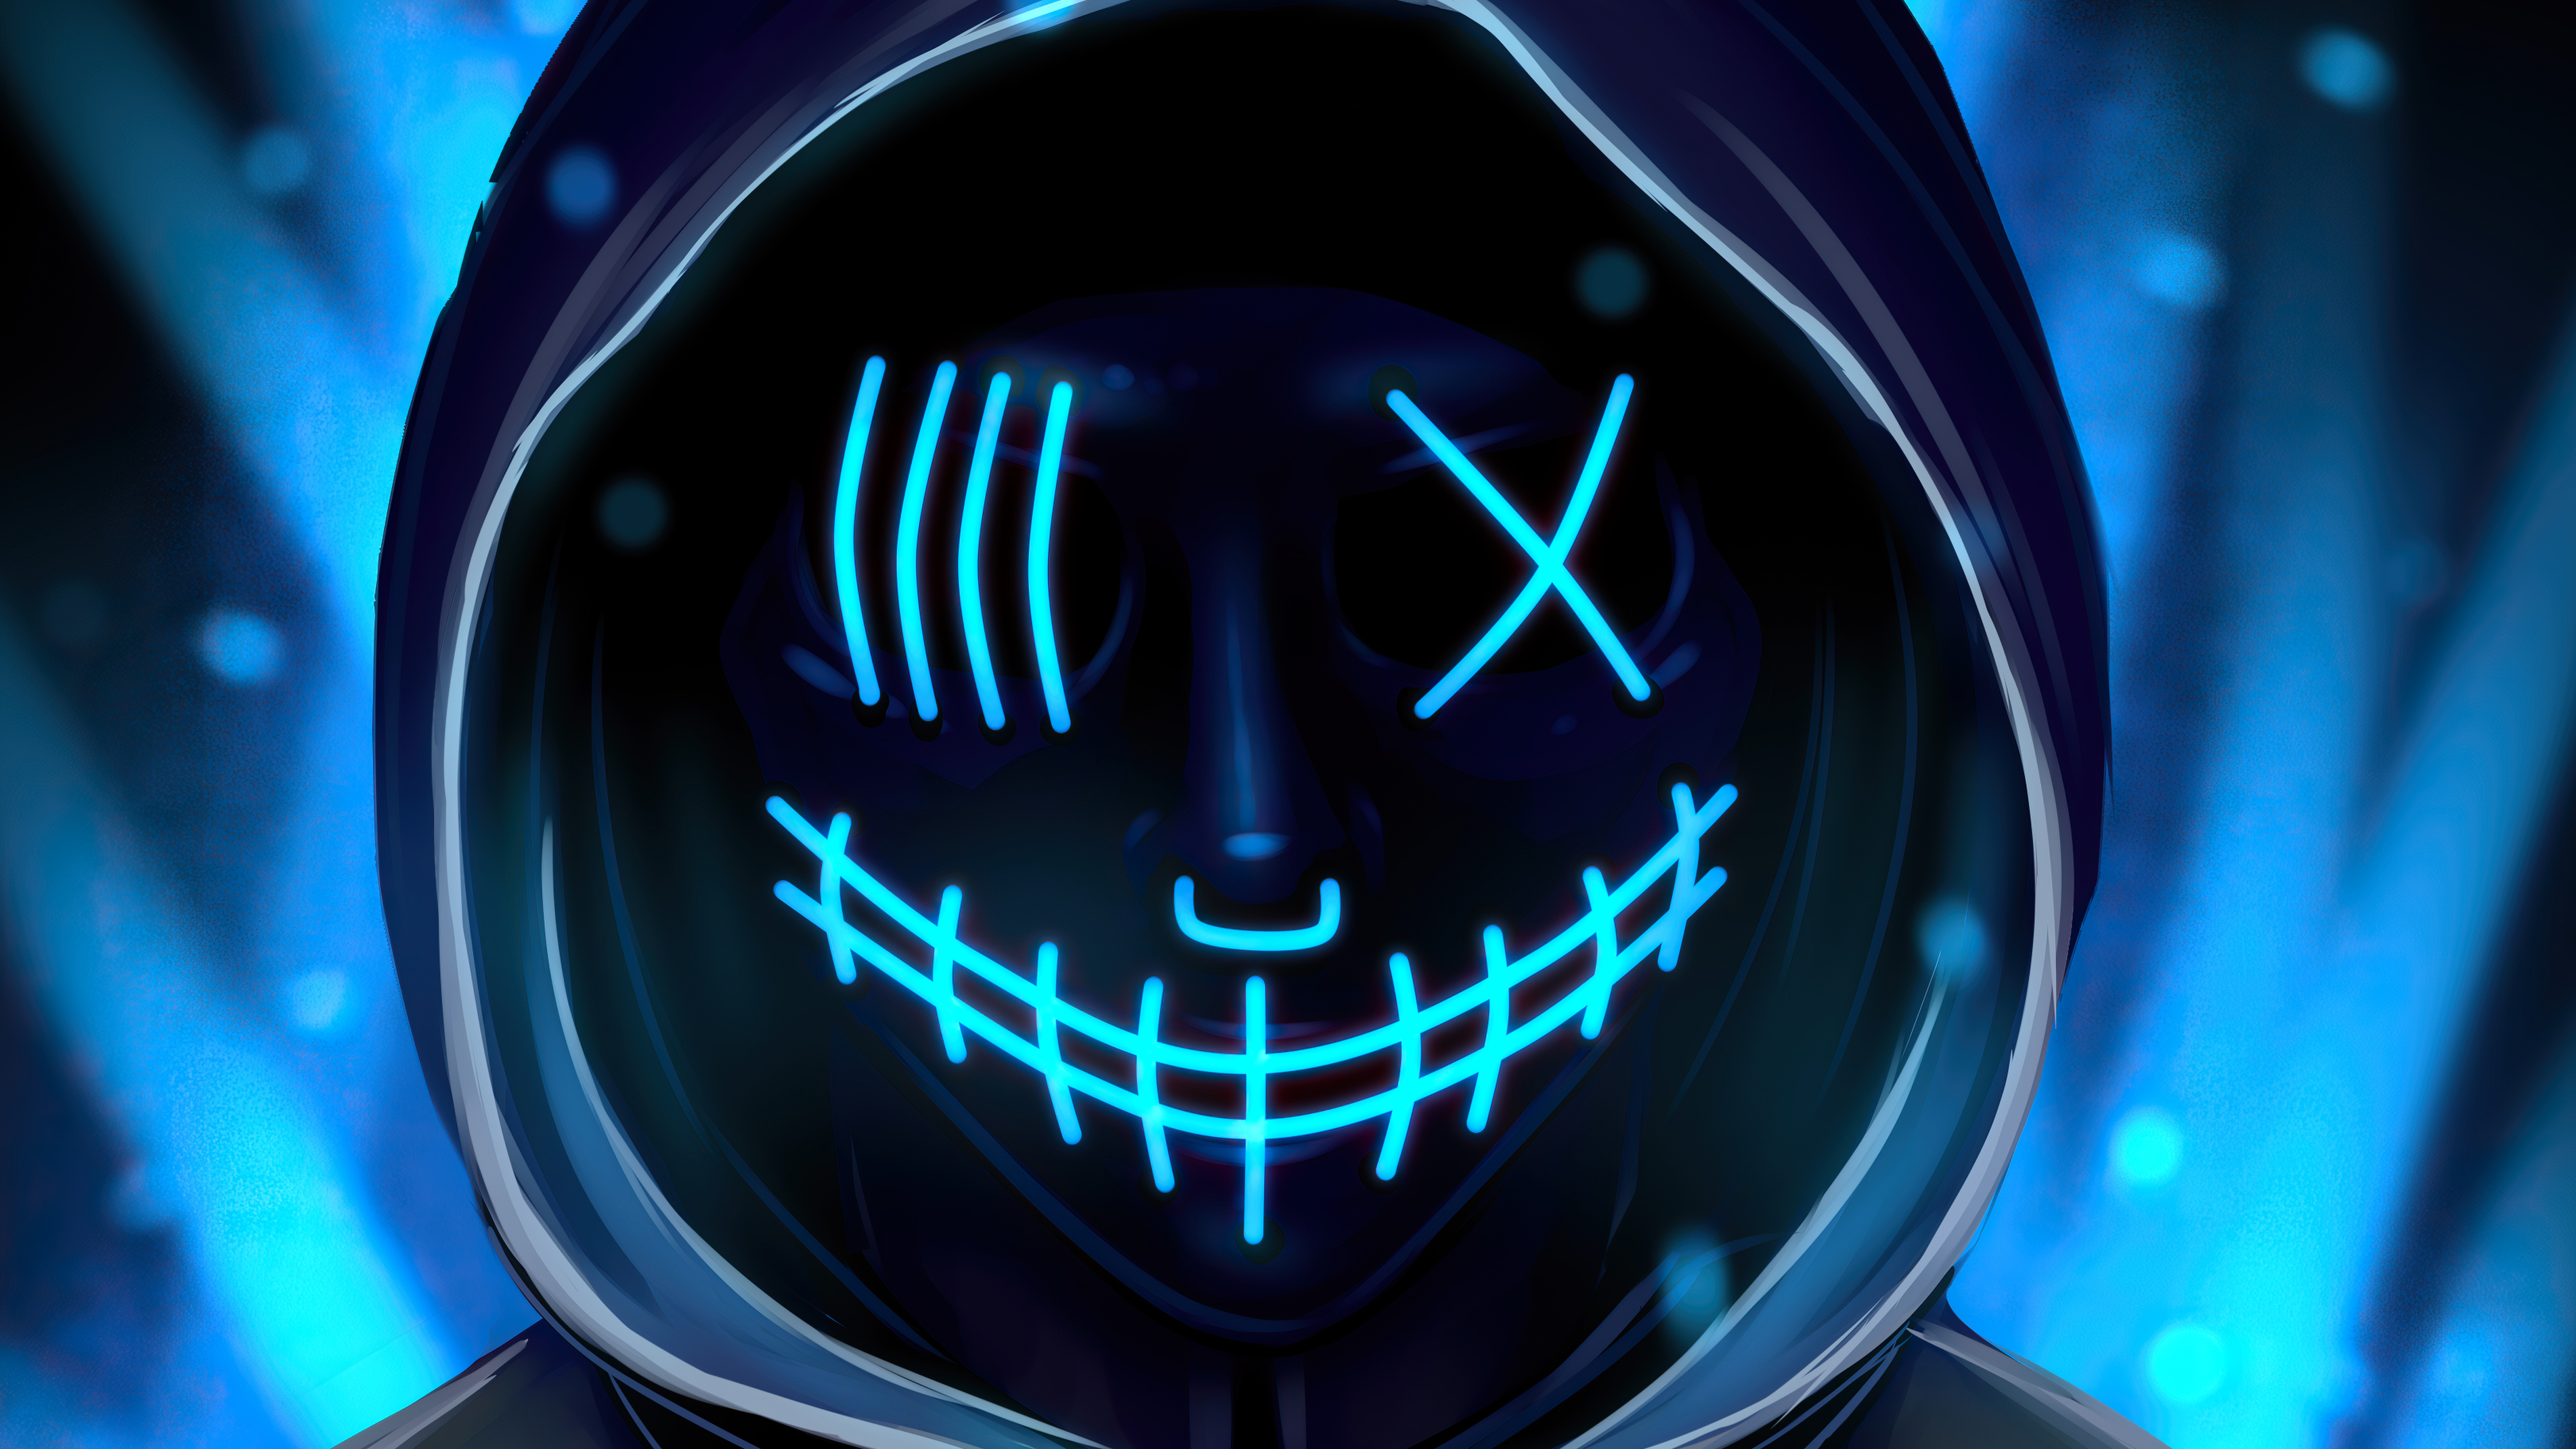 1920x1080 Neon Mask 4k Laptop Full Hd 1080p Hd 4k Wallpapers Images Backgrounds Photos And Pictures